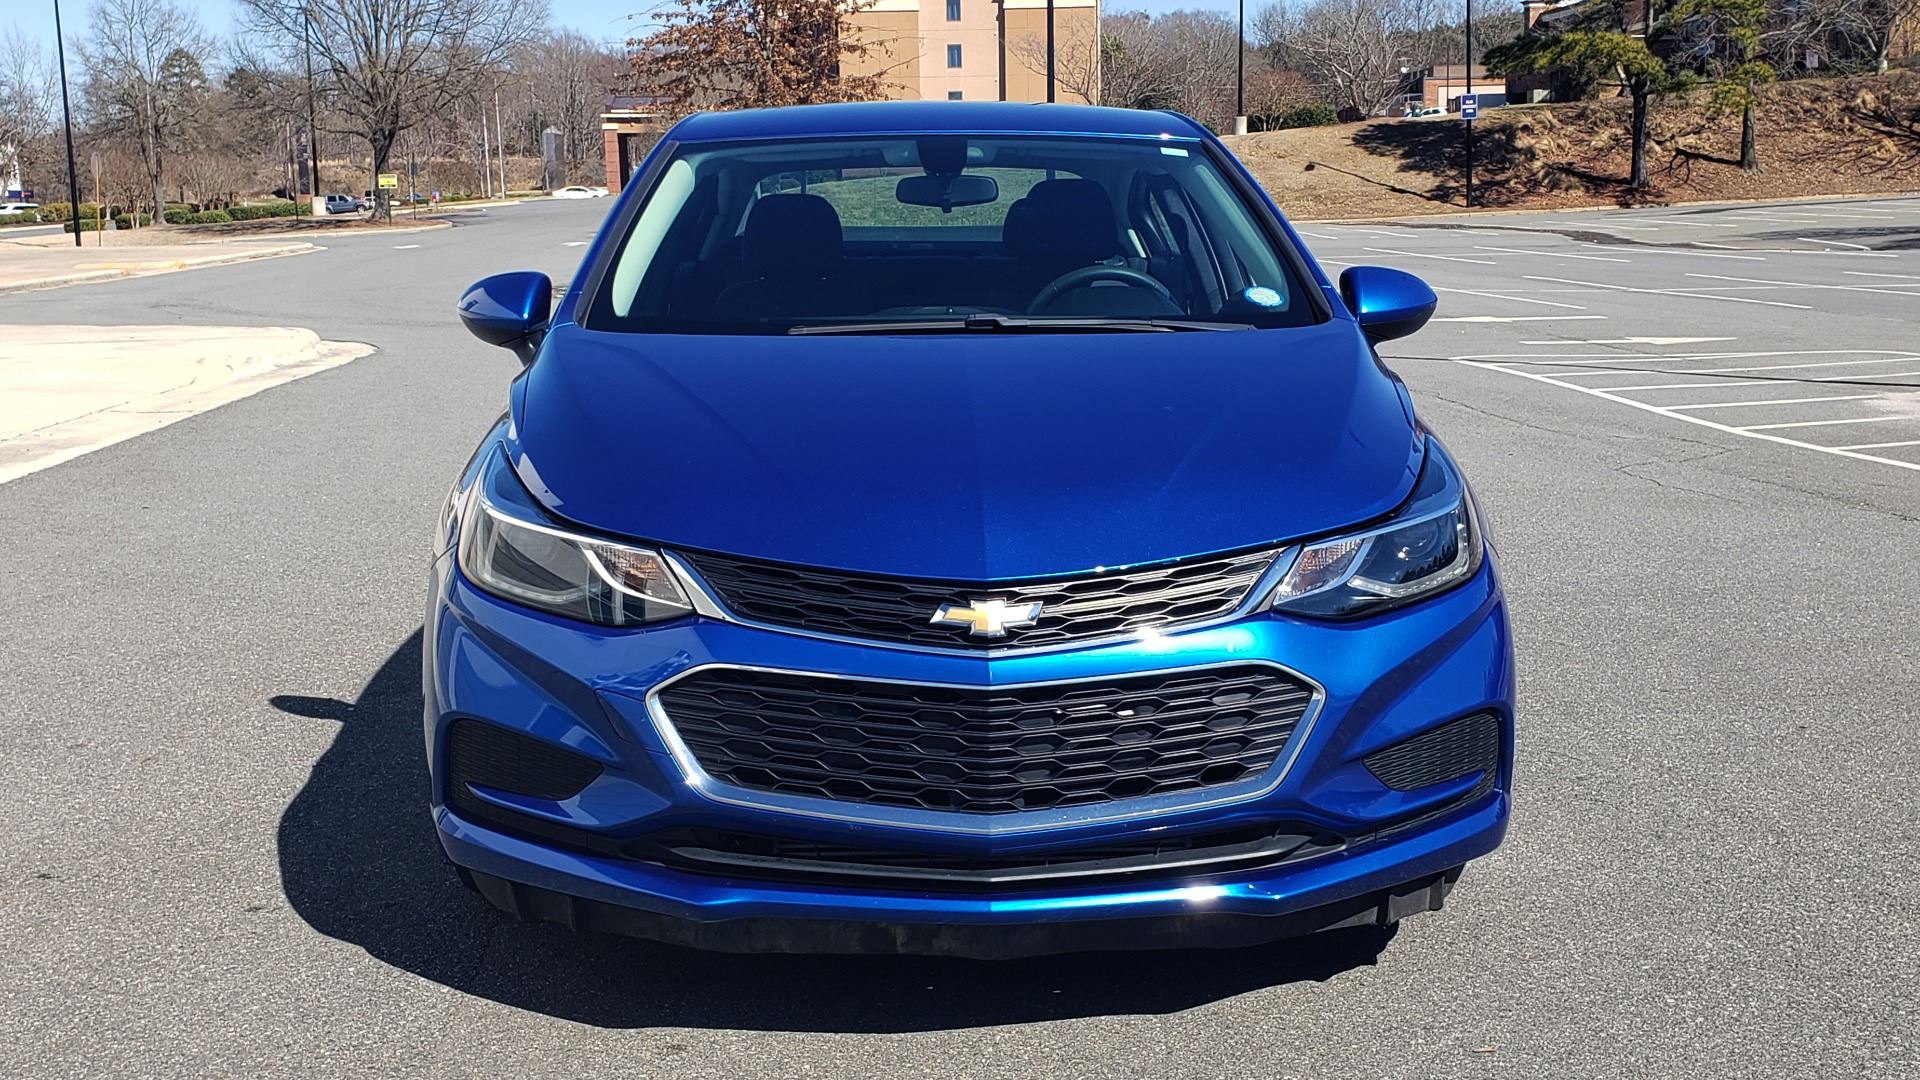 Used 2017 Chevrolet CRUZE LT 1.4L 1SD / 6-SPD AUTO / HTS STS / REMOTE START / REARVIEW for sale $11,495 at Formula Imports in Charlotte NC 28227 20